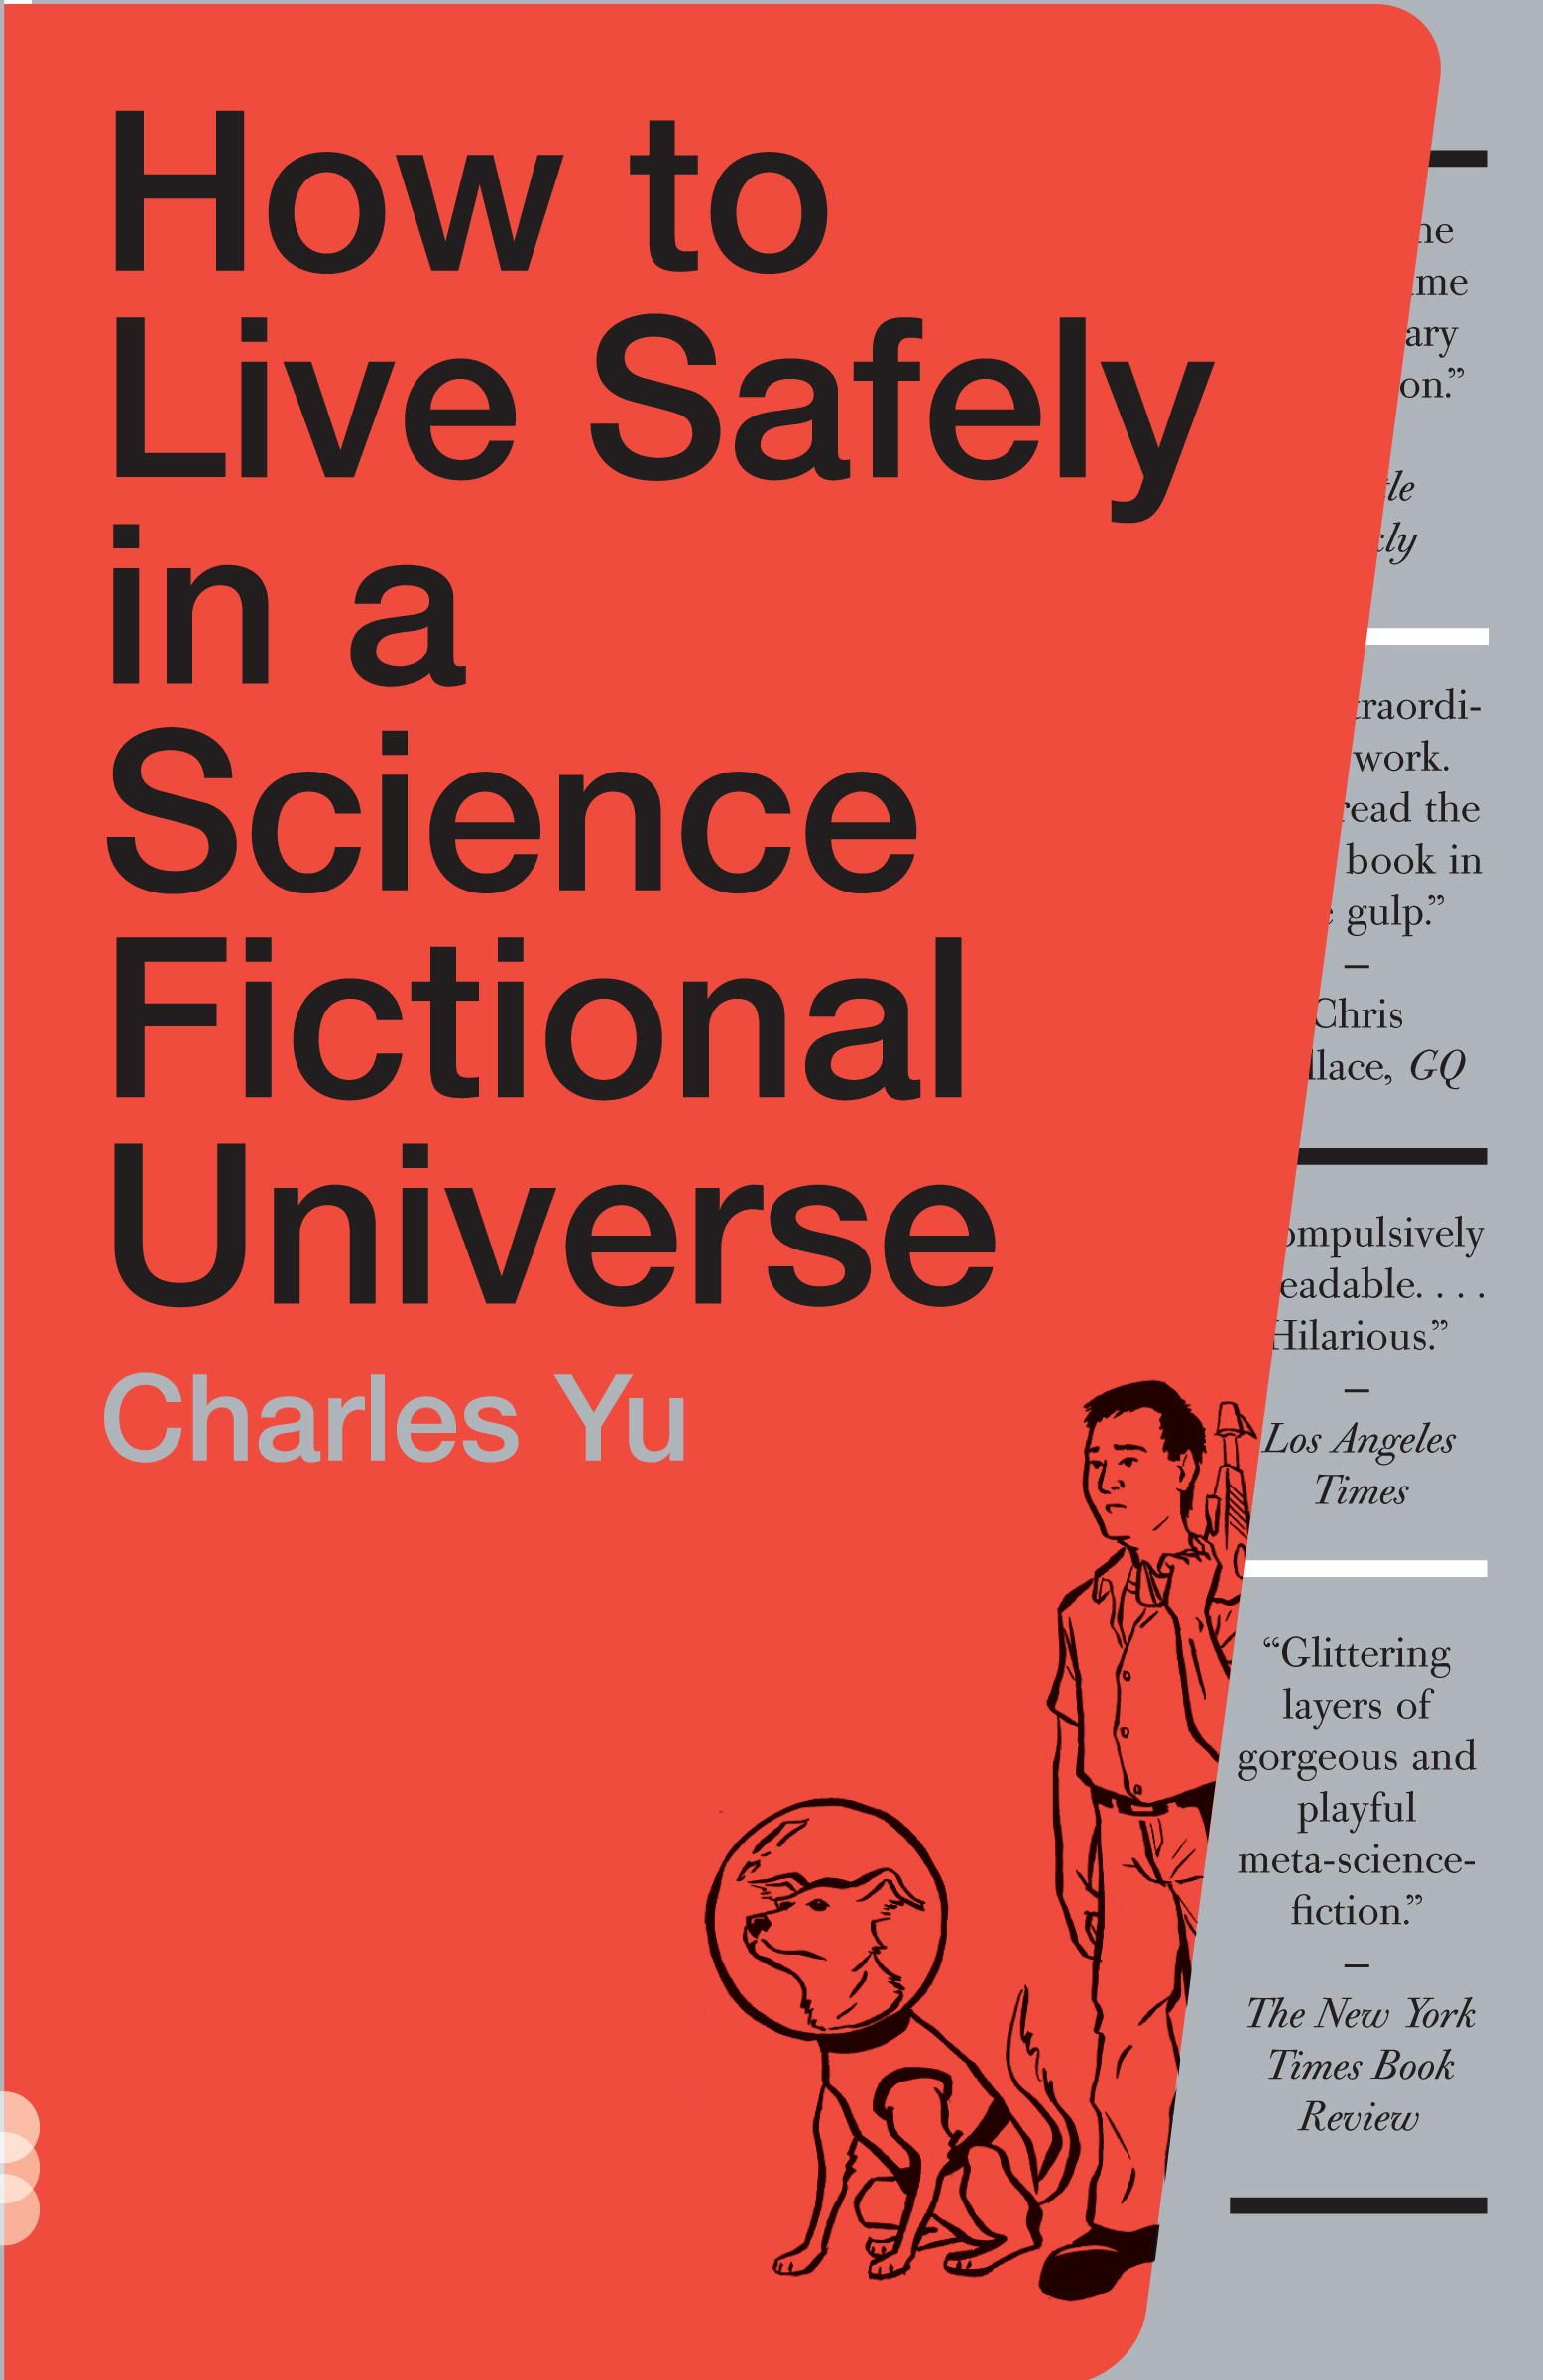 Charles Yu: How to Live Safely in a Science Fictional Universe